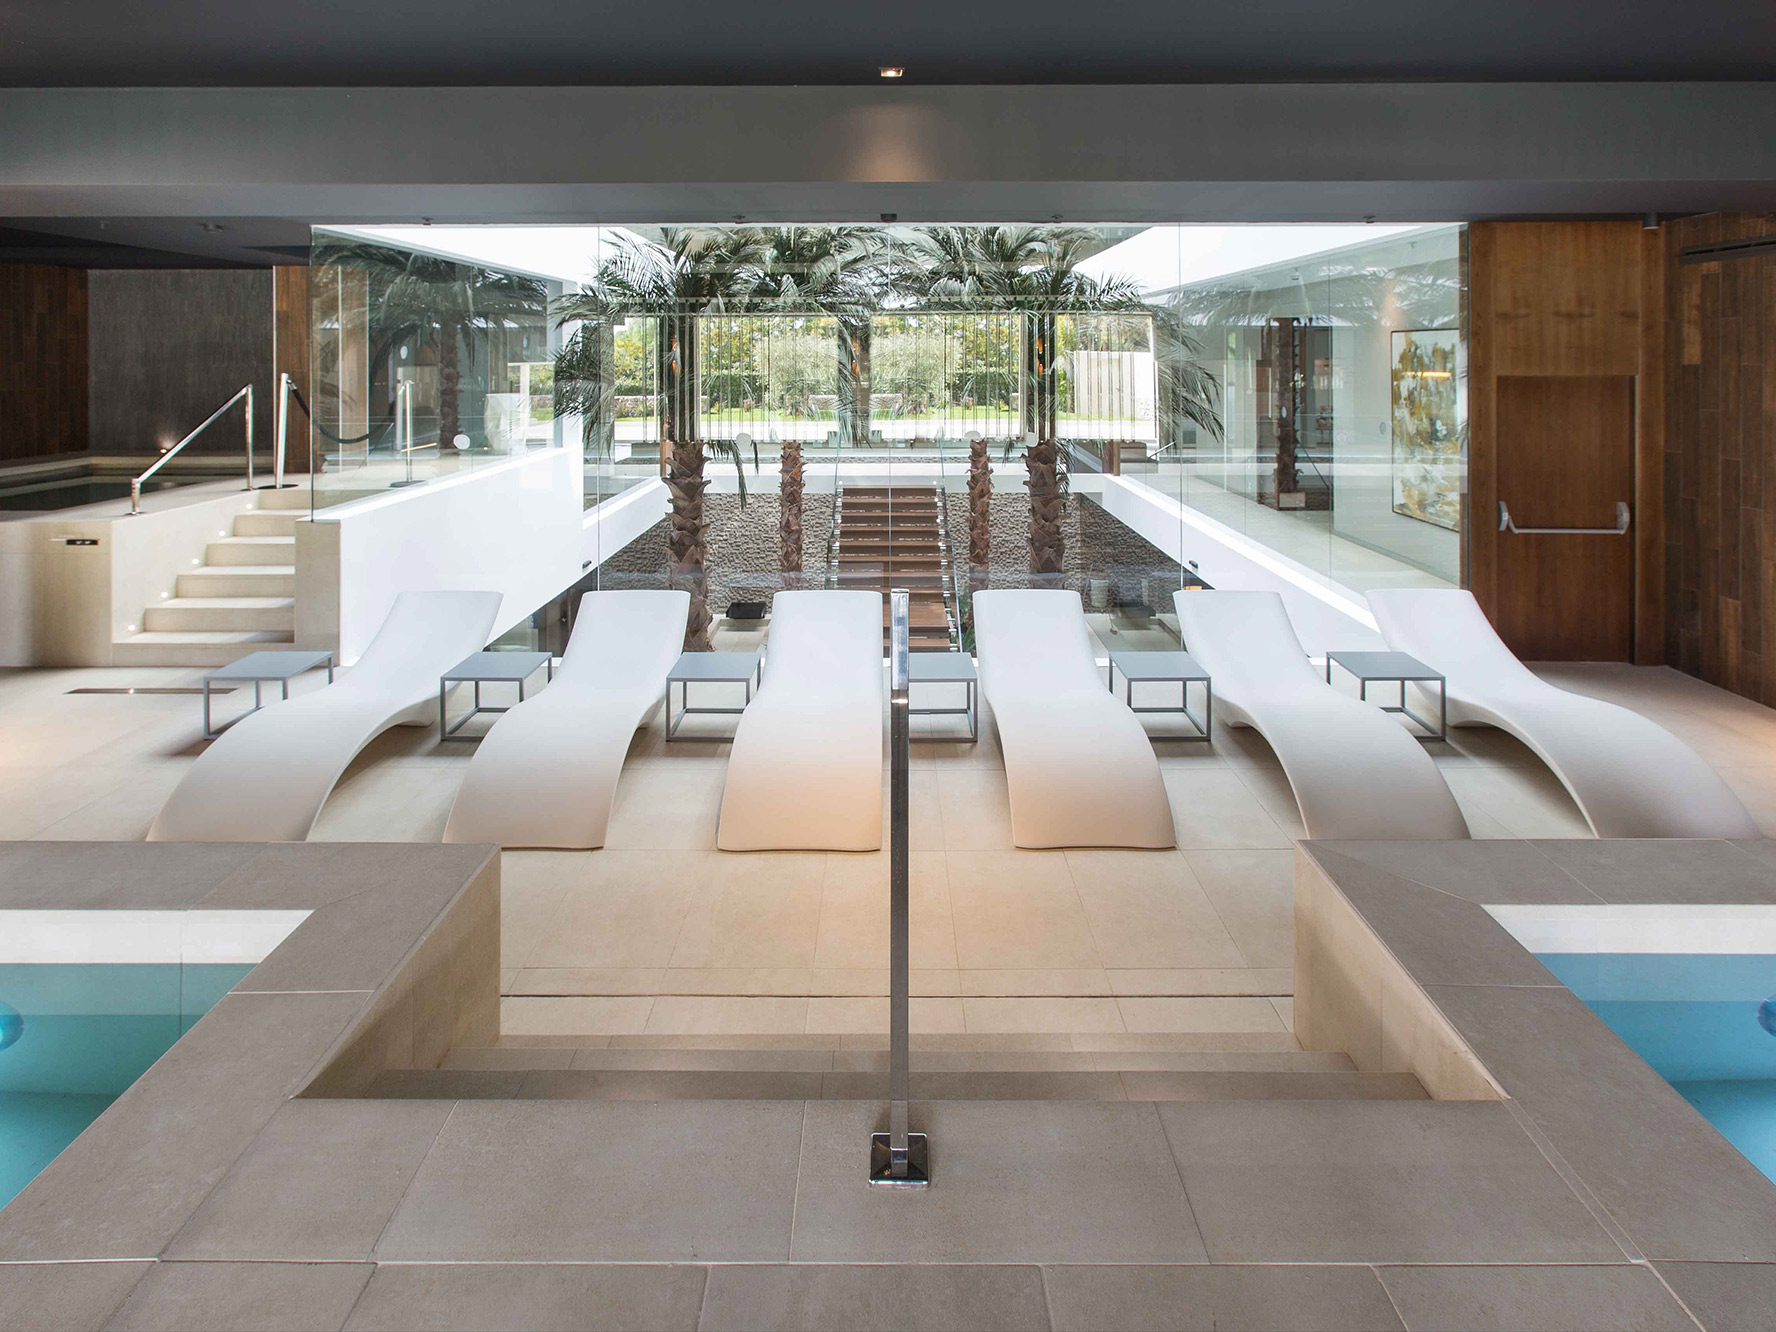 The Oasis Spa & Wellness Marbella | Interioristas Decoradores | MOEM Studio